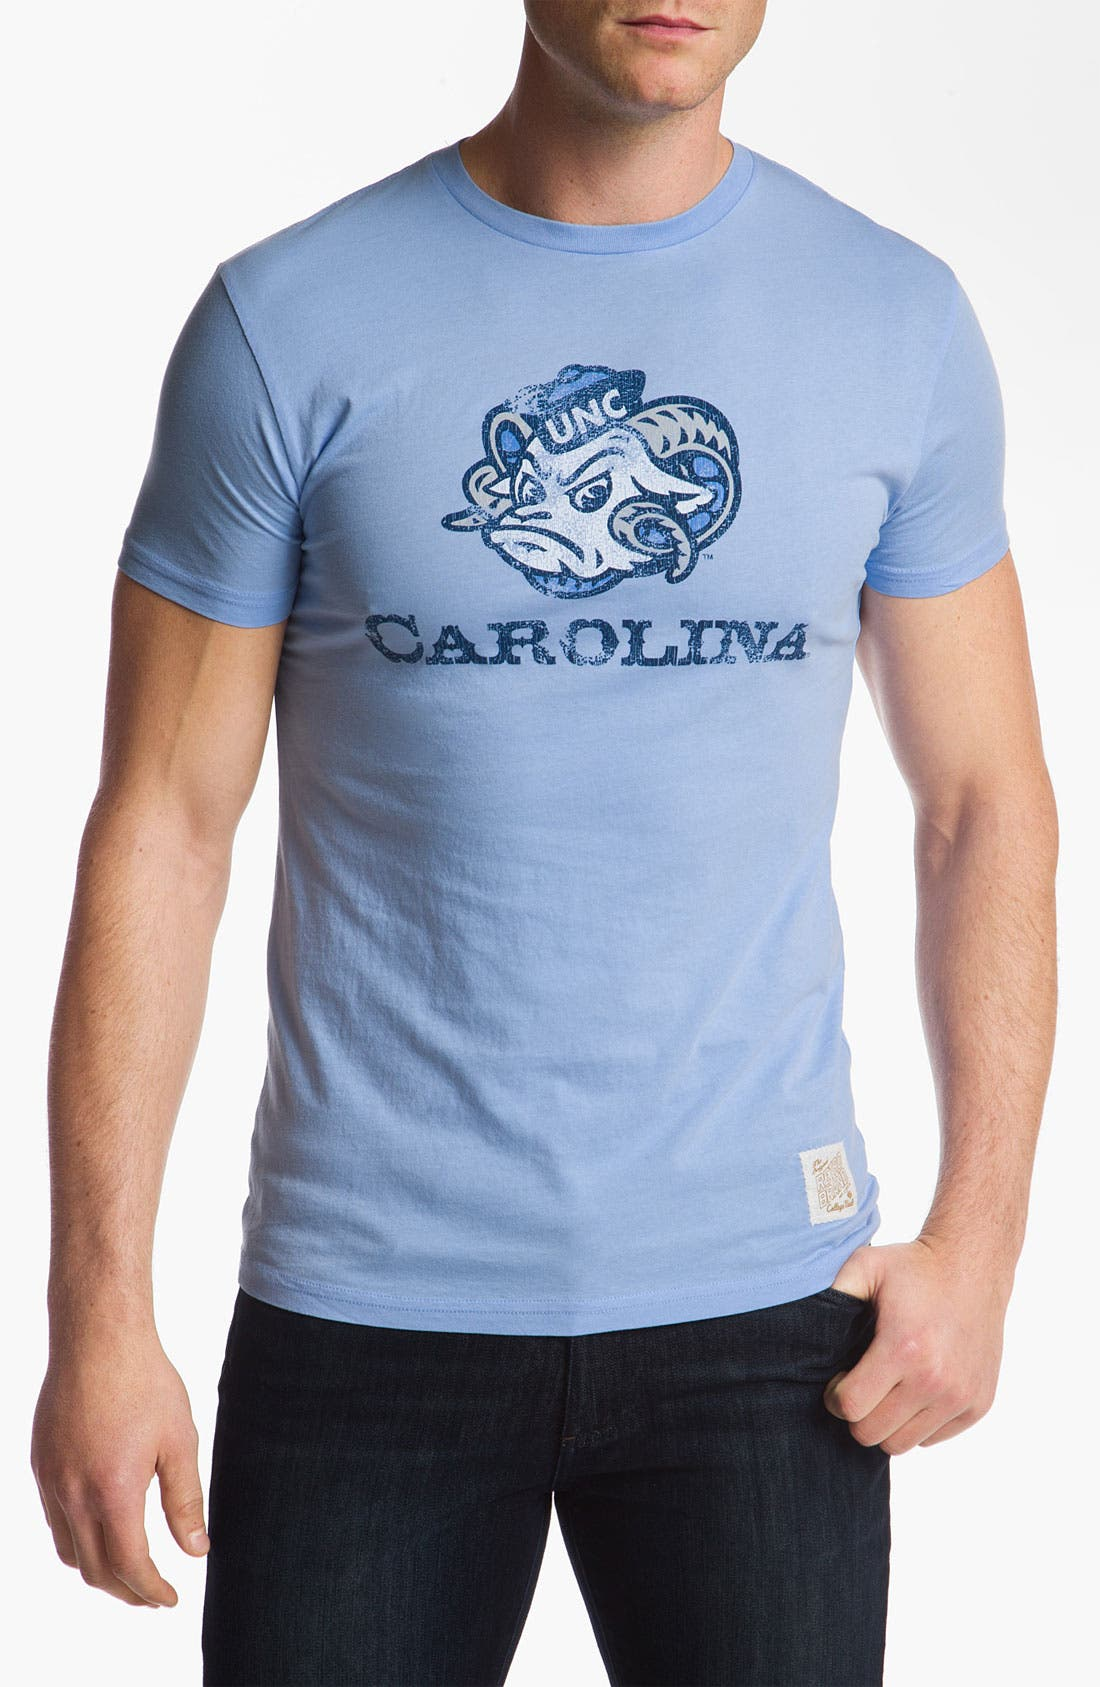 Alternate Image 1 Selected - The Original Retro Brand 'North Carolina Tar Heels' T-Shirt